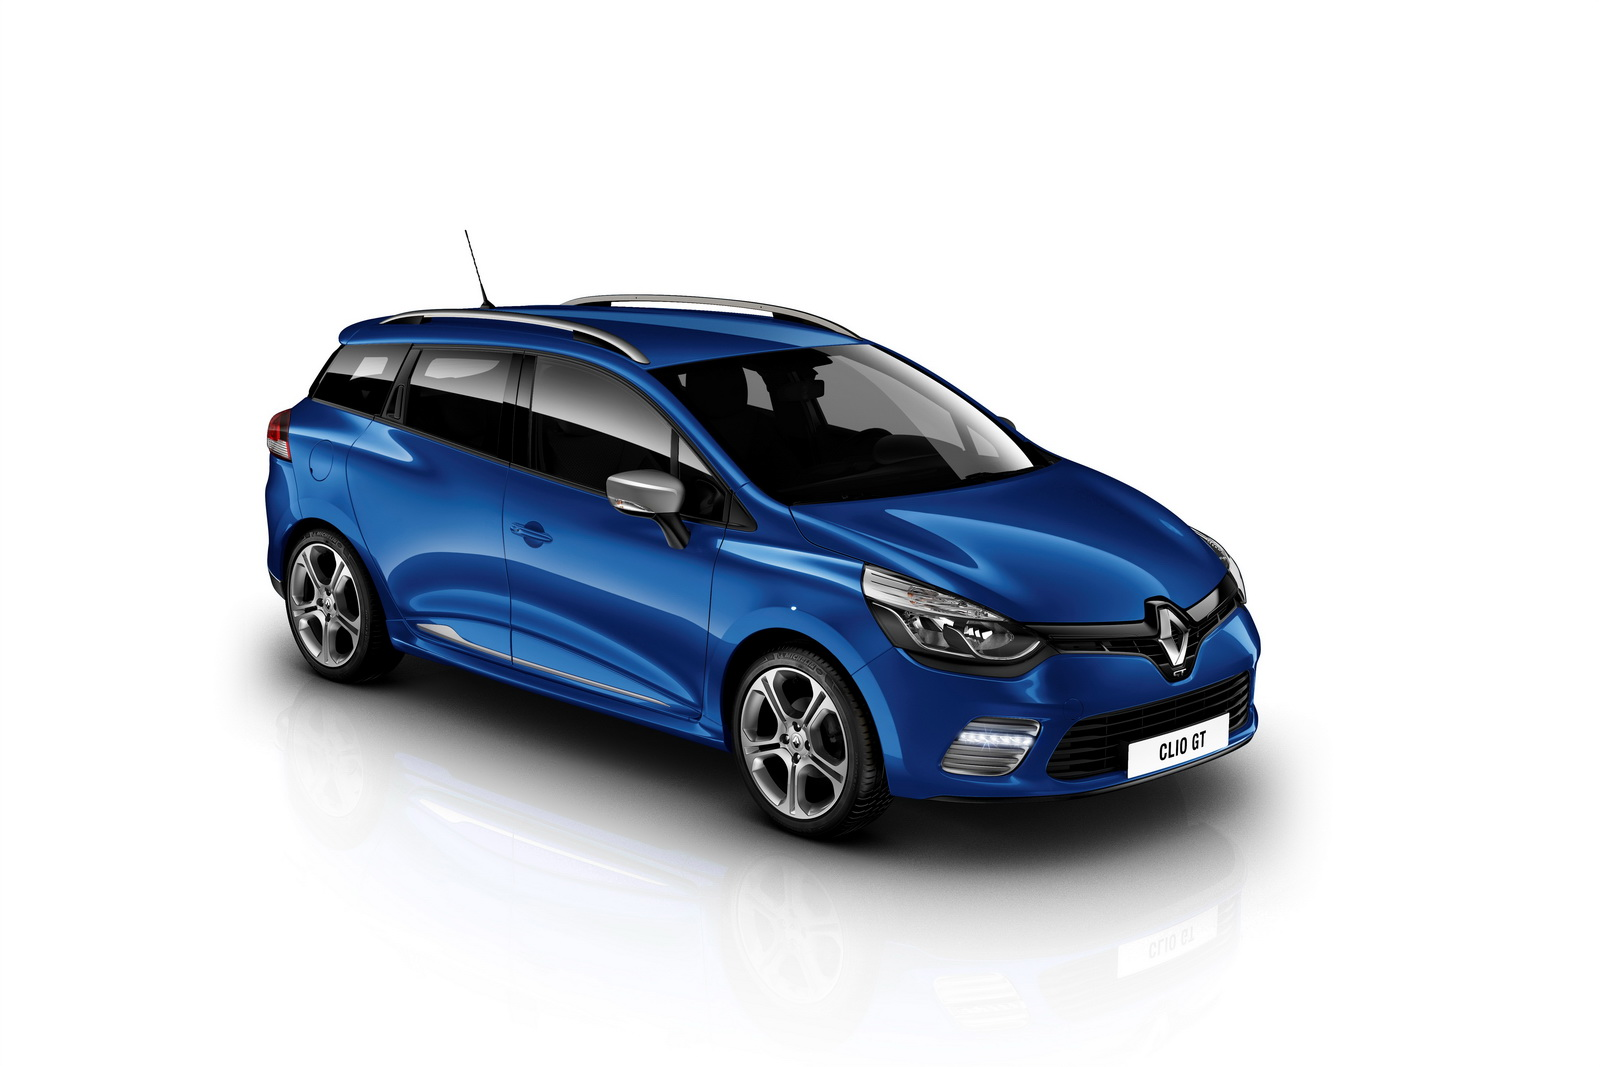 renault clio gt 120 edc. Black Bedroom Furniture Sets. Home Design Ideas